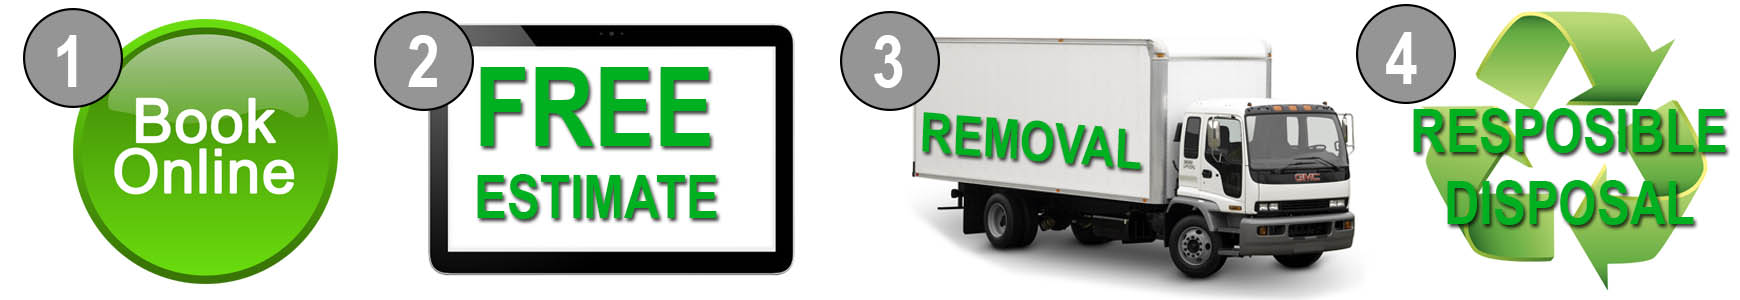 STEPS FOR JUNK REMOVAL SERVICE